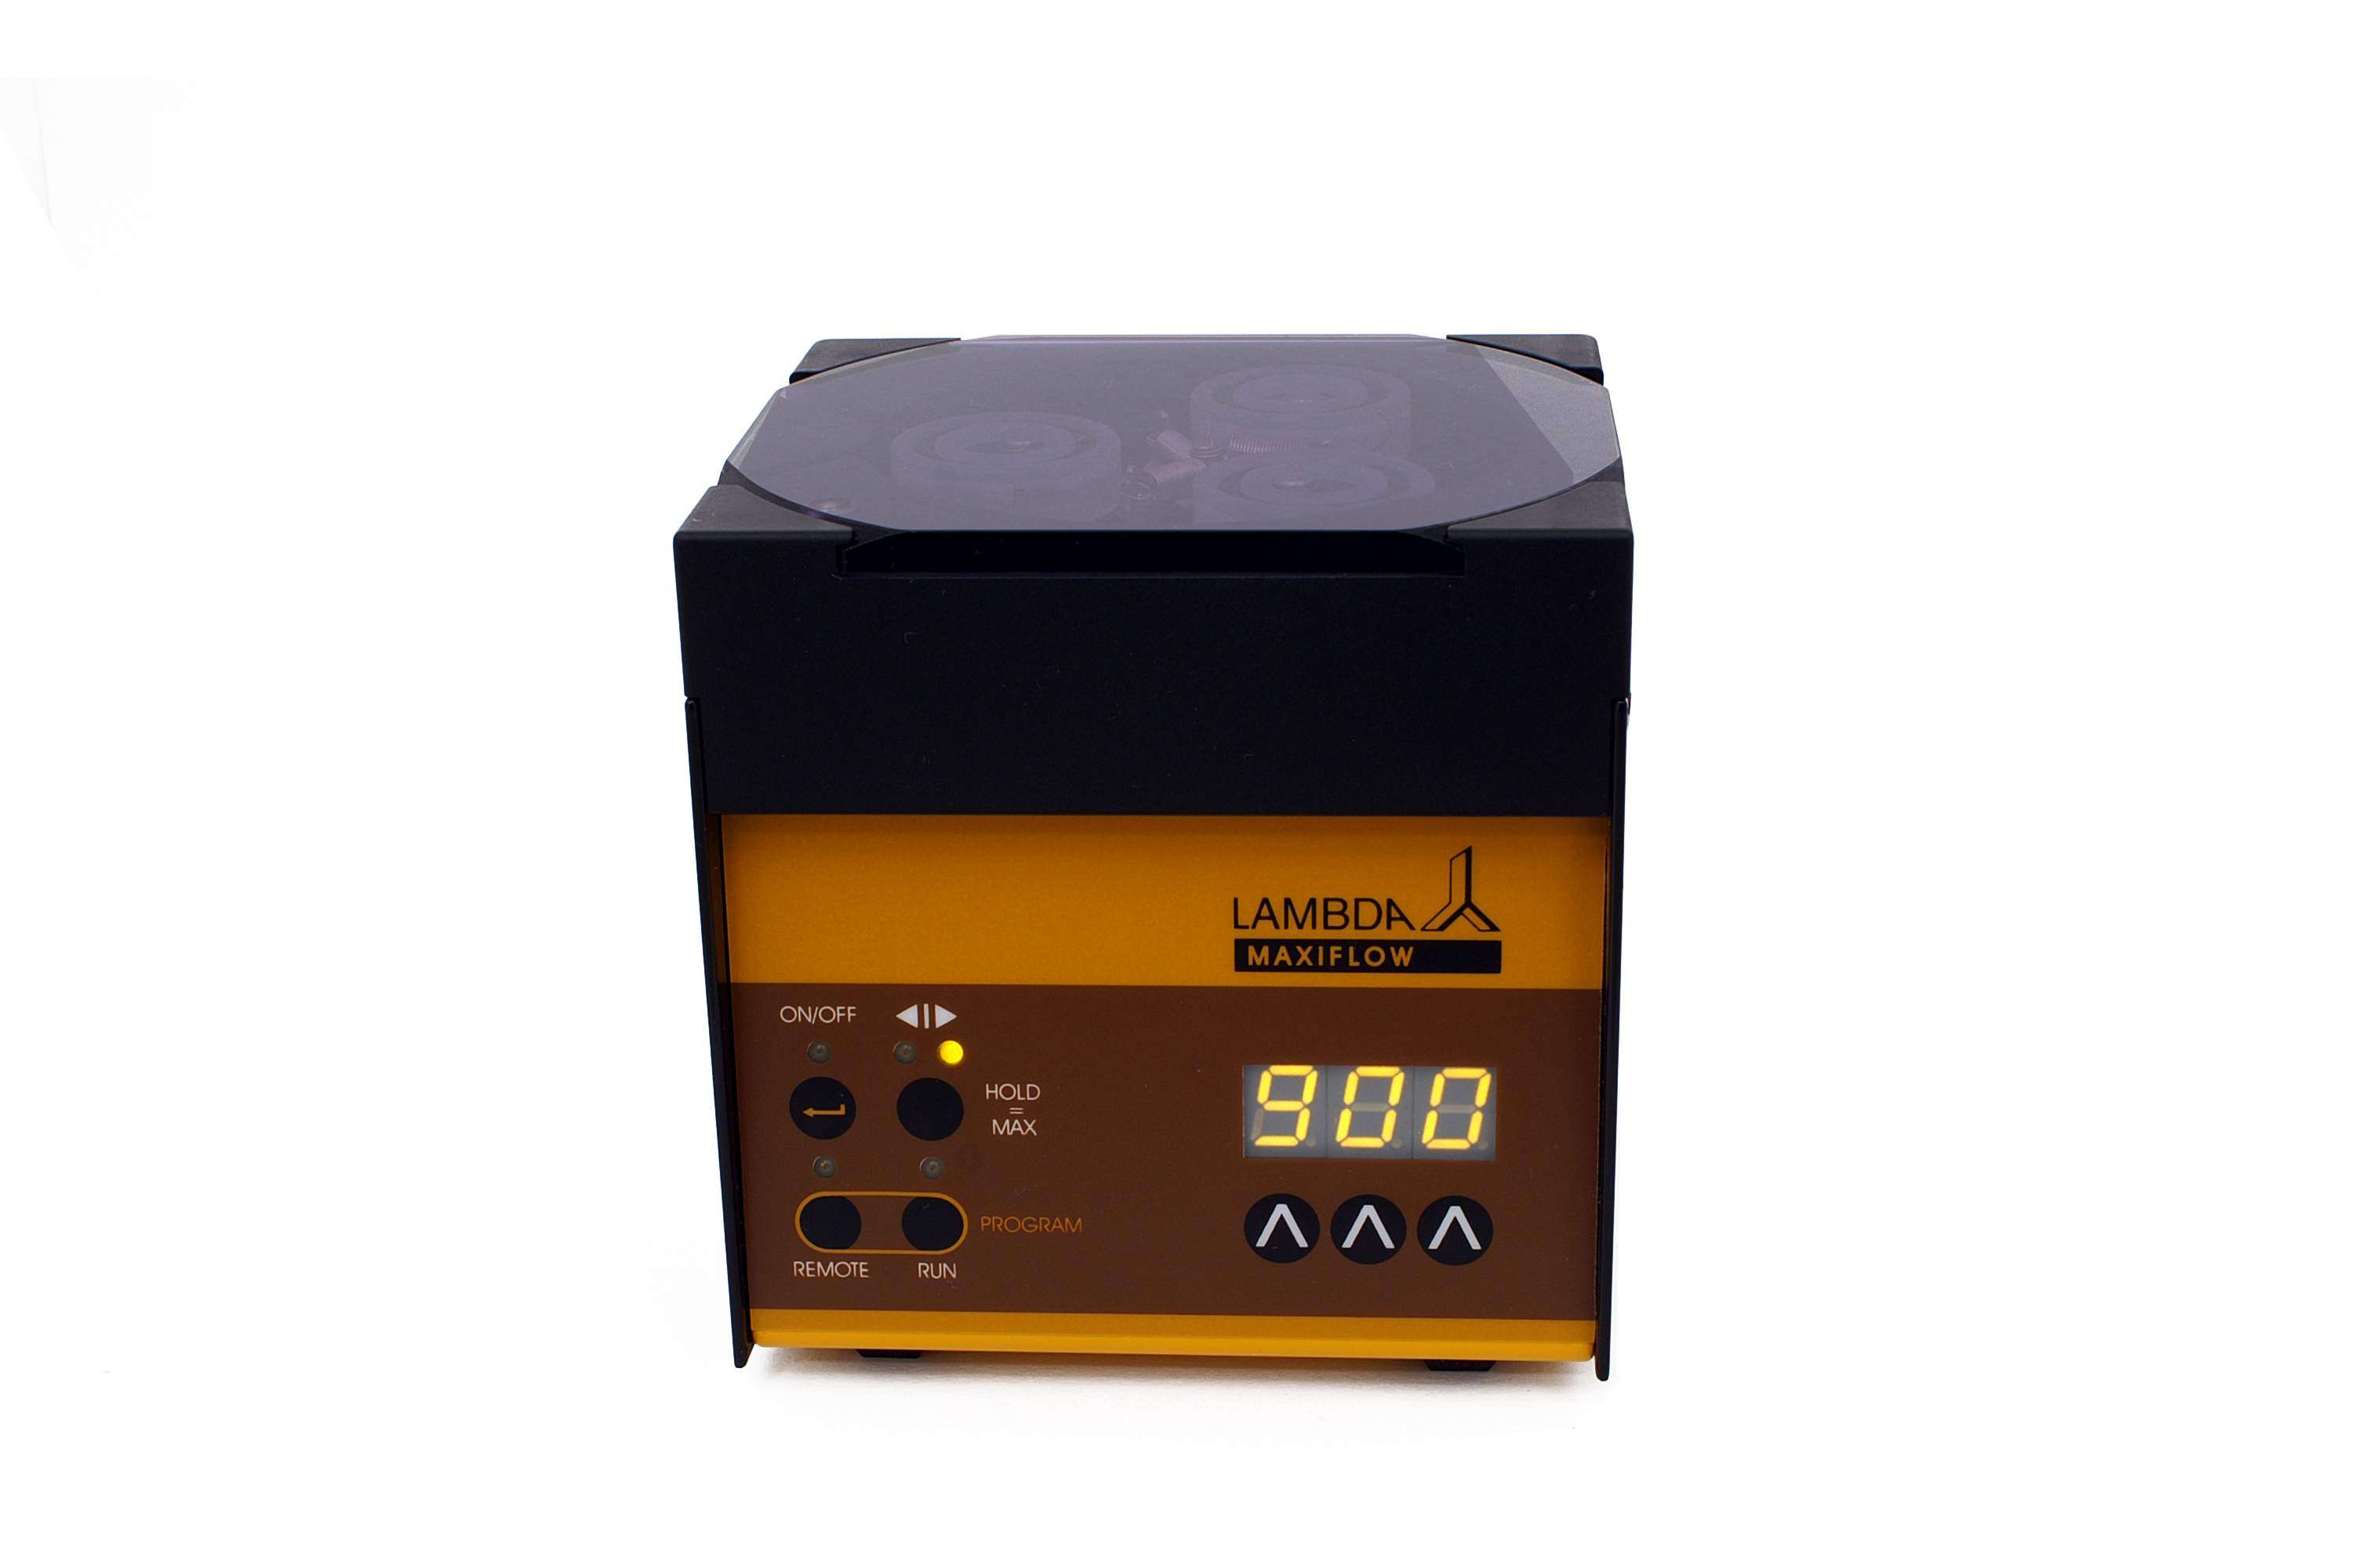 Buy MAXIFLOW peristaltic pump